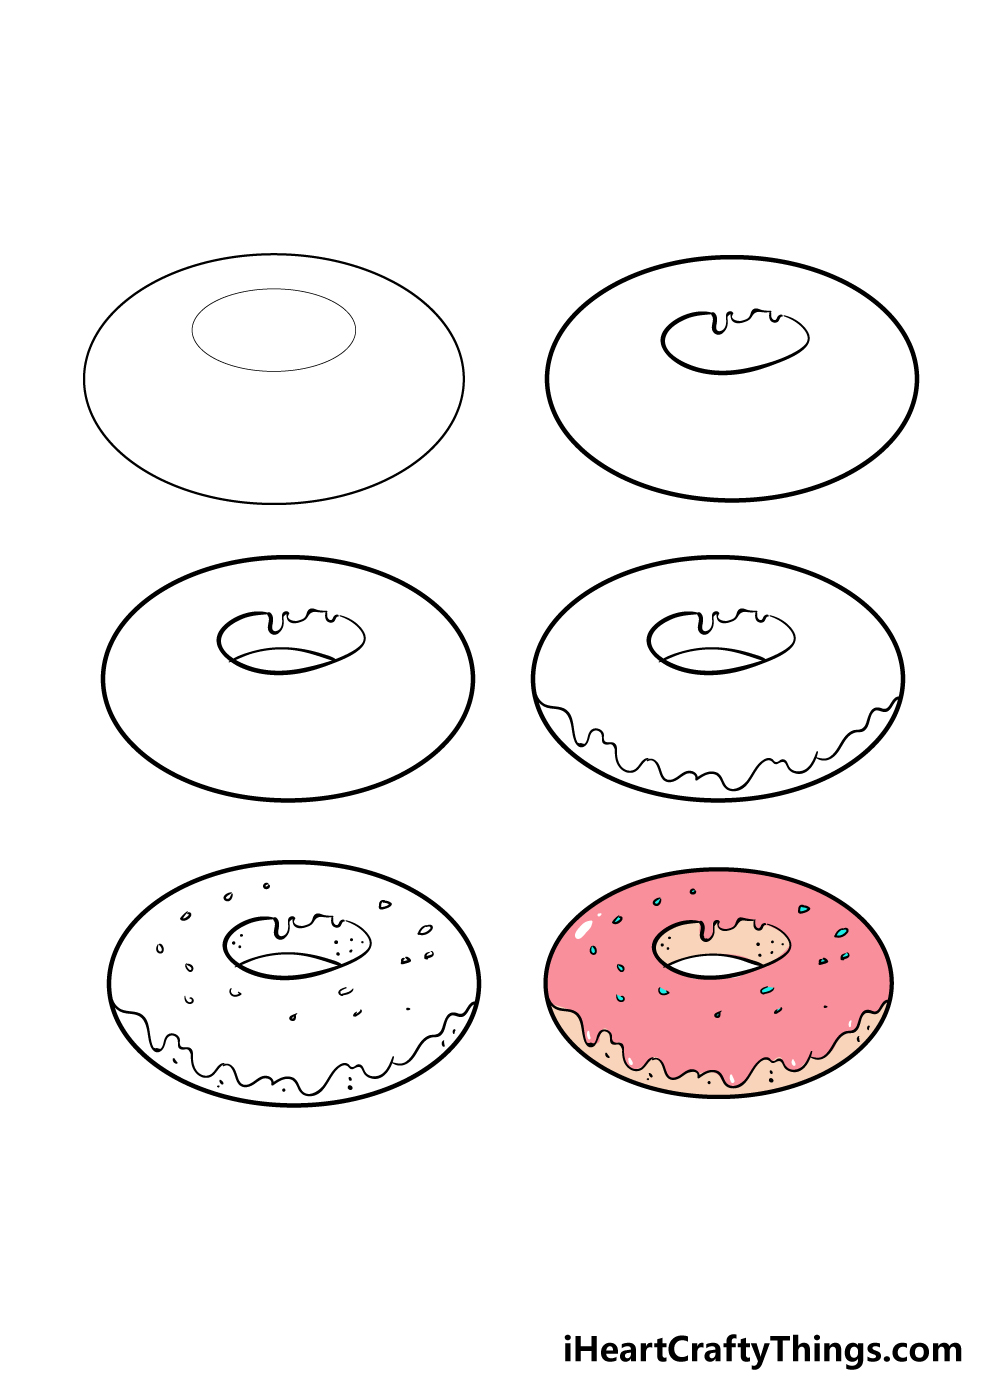 how to draw donut in 6 steps